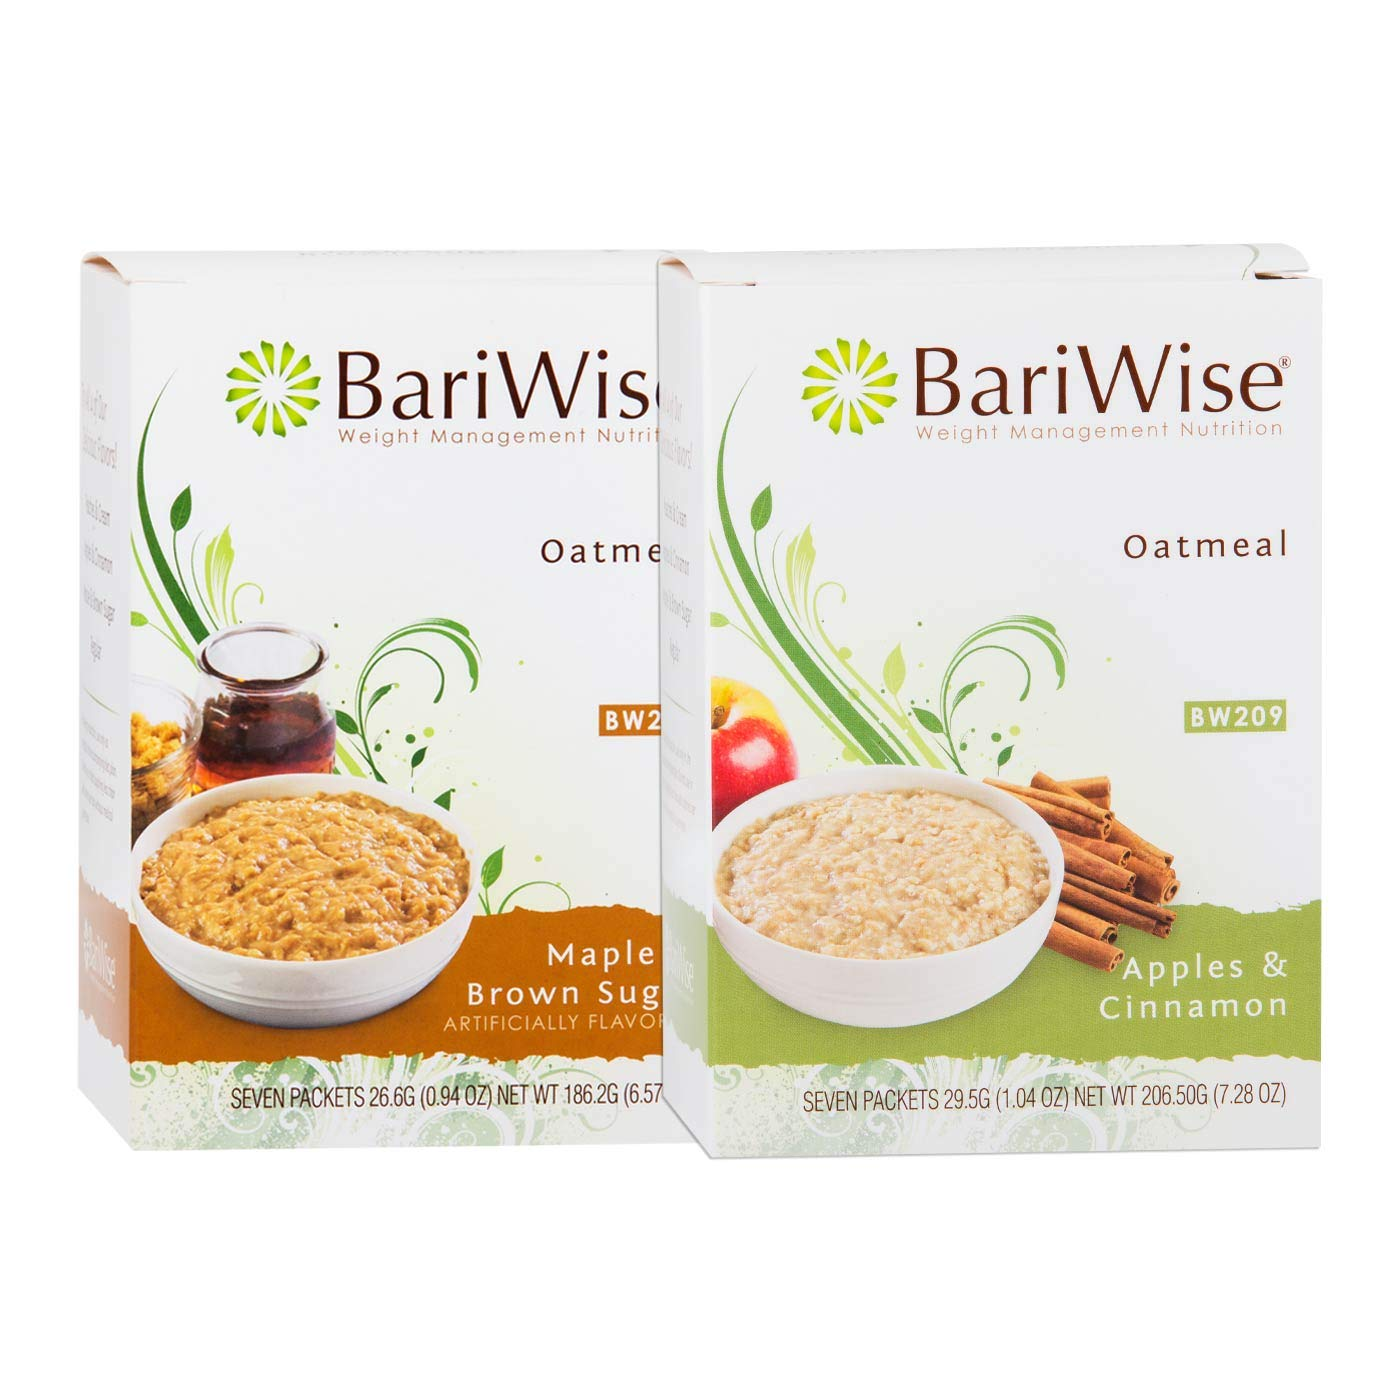 BariWise Protein Max 86% OFF Oatmeal Bundle Maple Apples Brown Sugar and Max 88% OFF